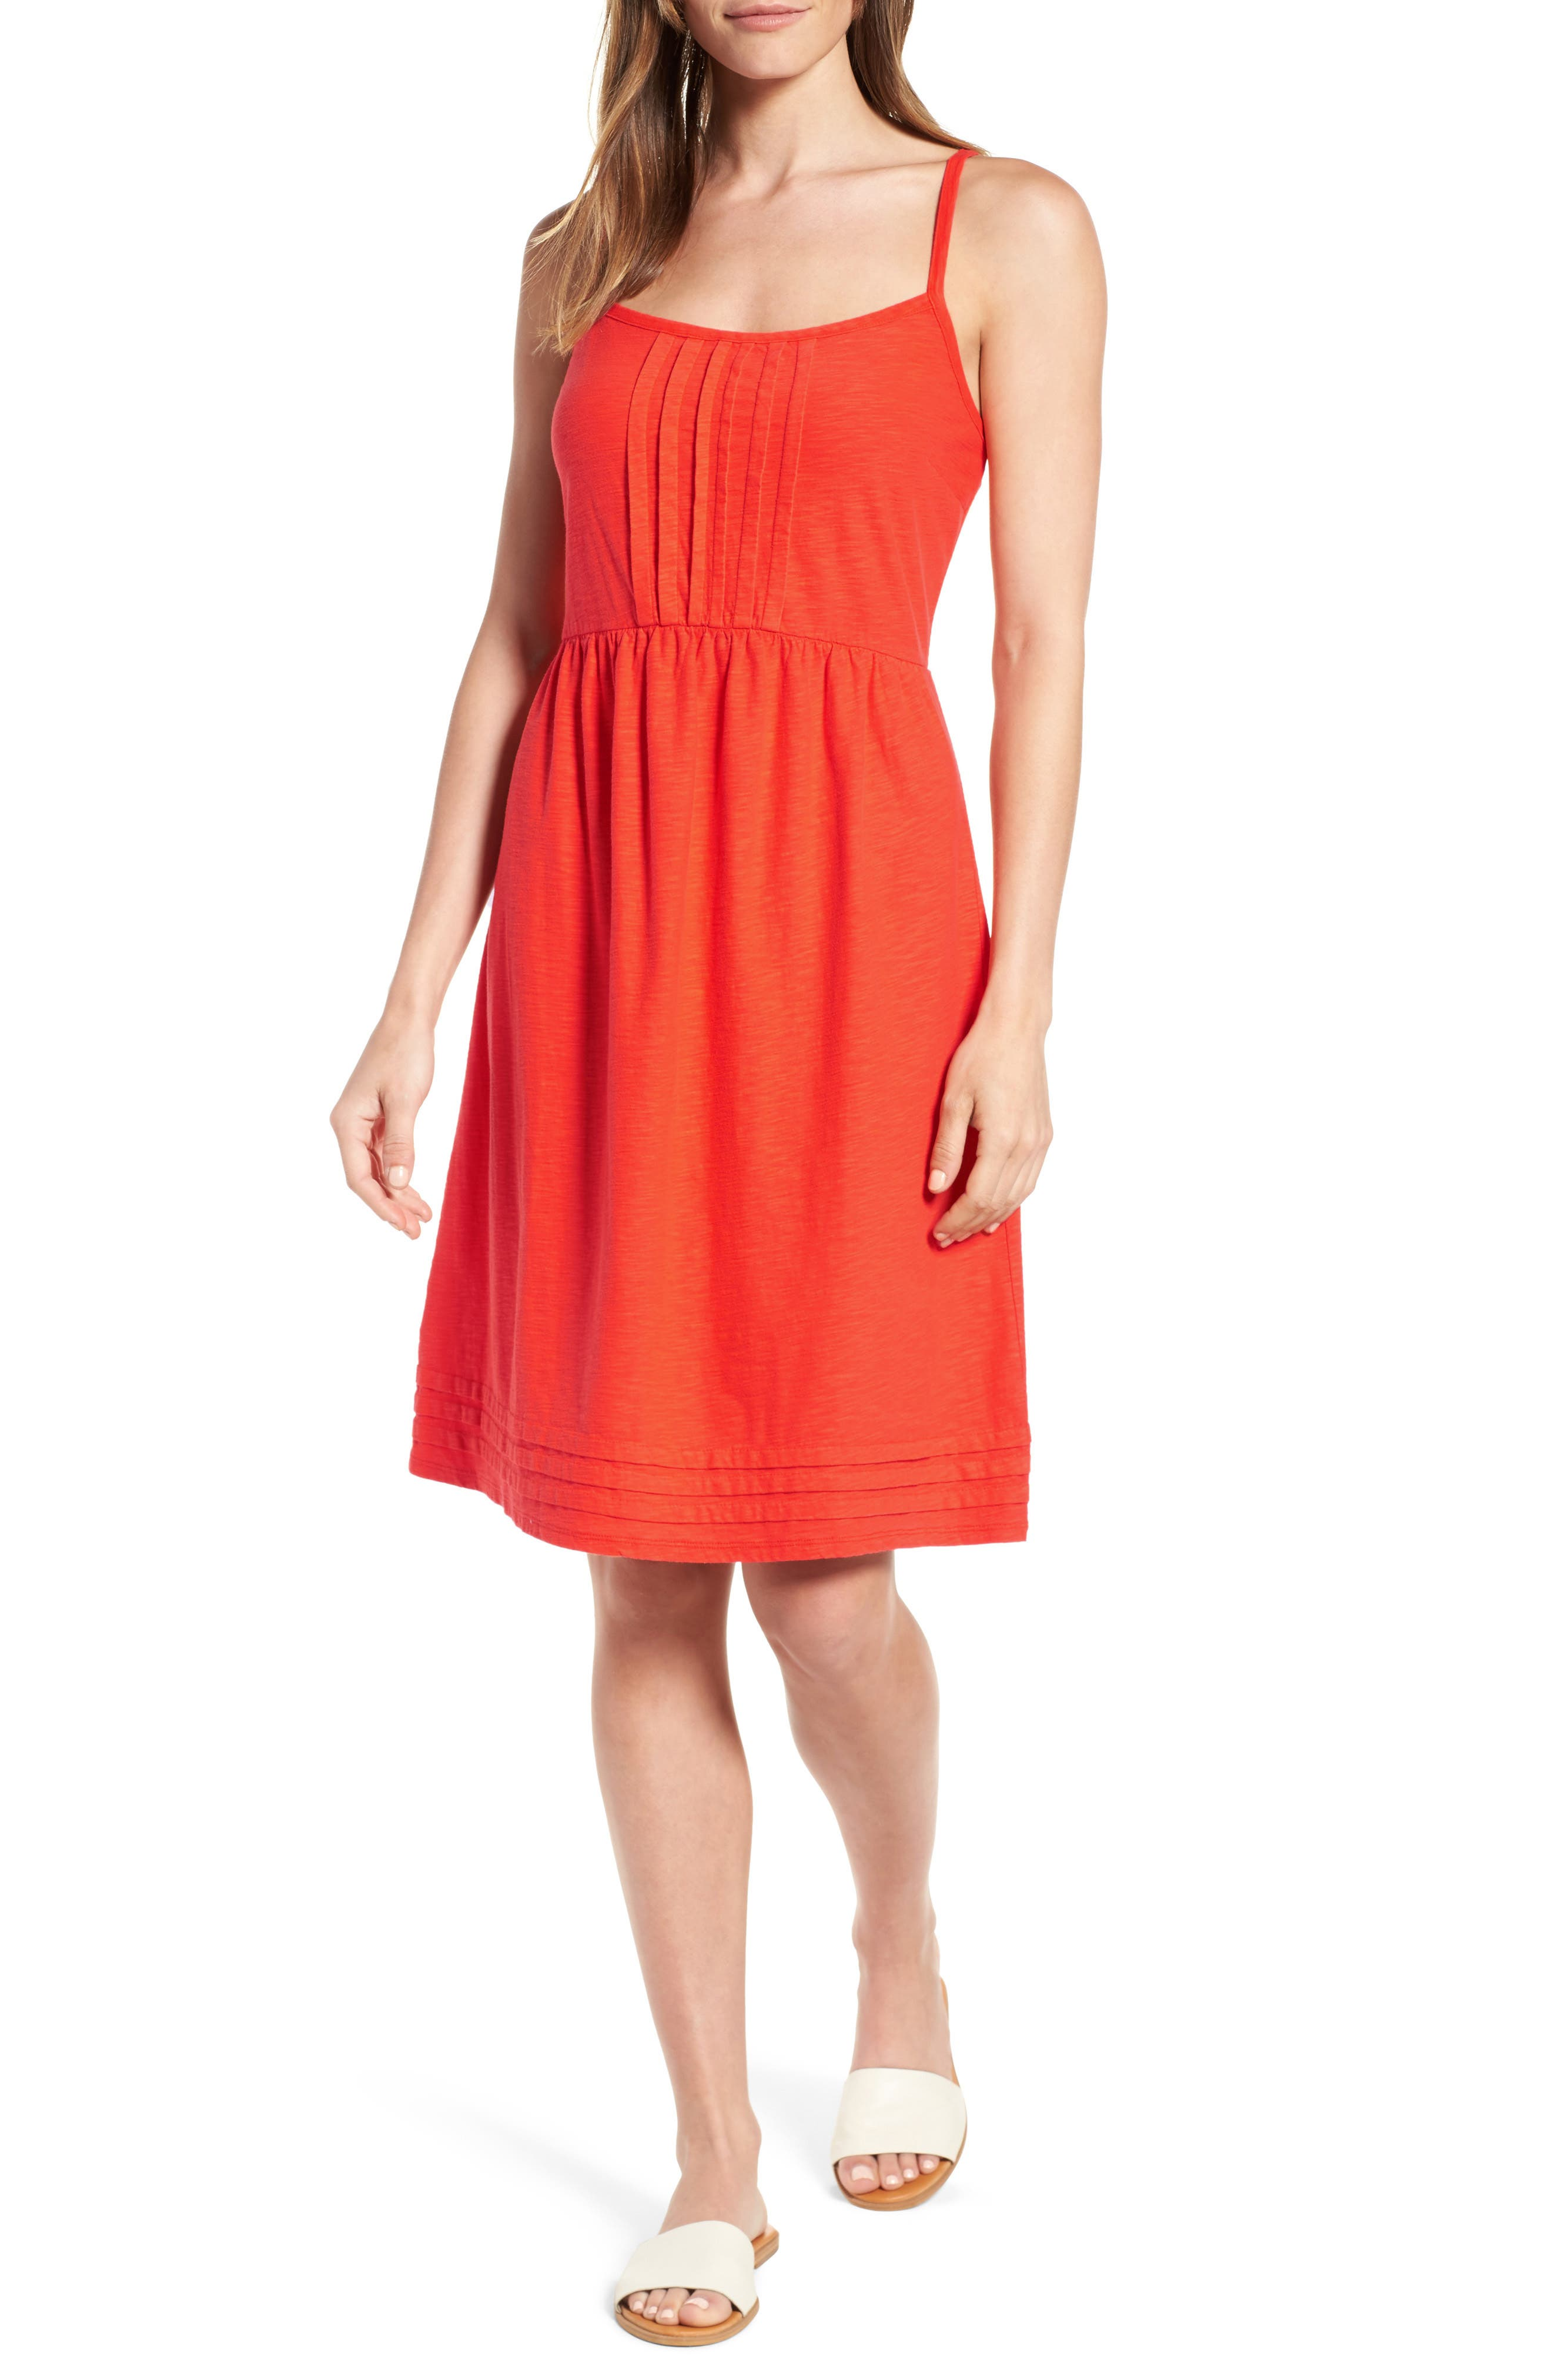 Arden Pleat Jersey Sundress,                         Main,                         color, Blazing Orange